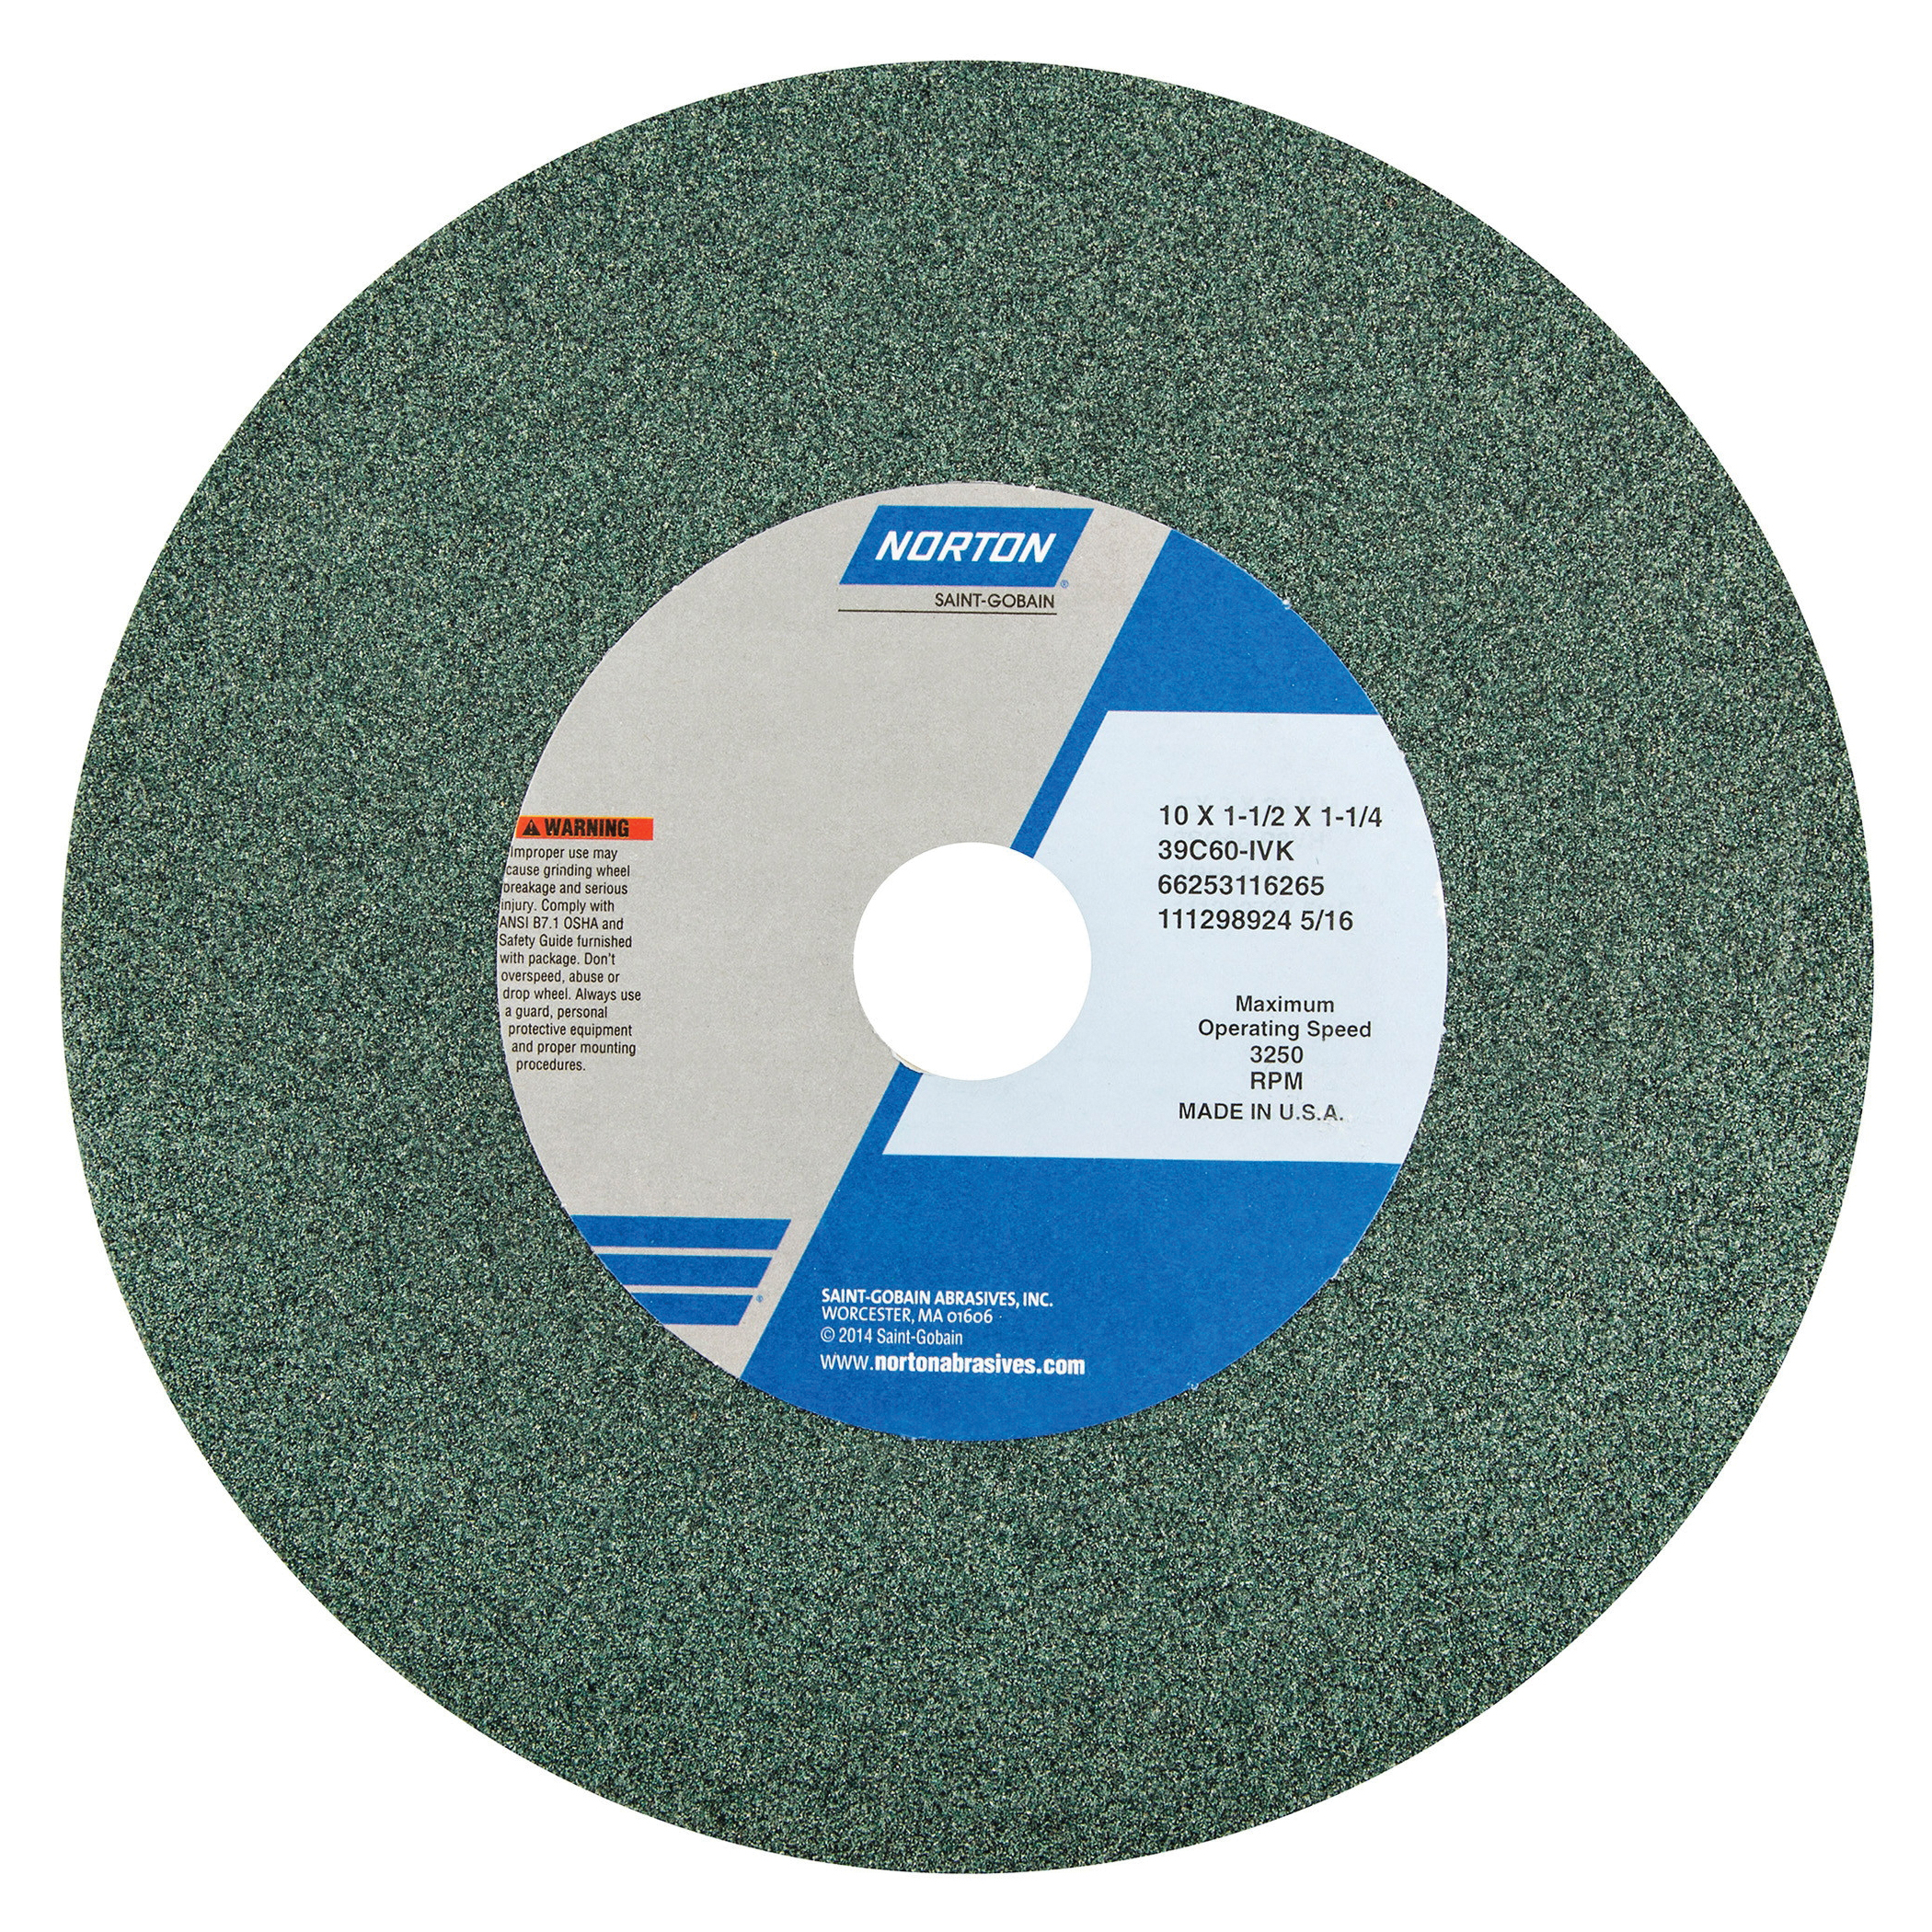 Norton® 66253319968 39C Straight Bench and Pedestal Grinding Wheel, 14 in Dia x 2 in THK, 1-1/2 in Center Hole, 60 Grit, Silicon Carbide Abrasive